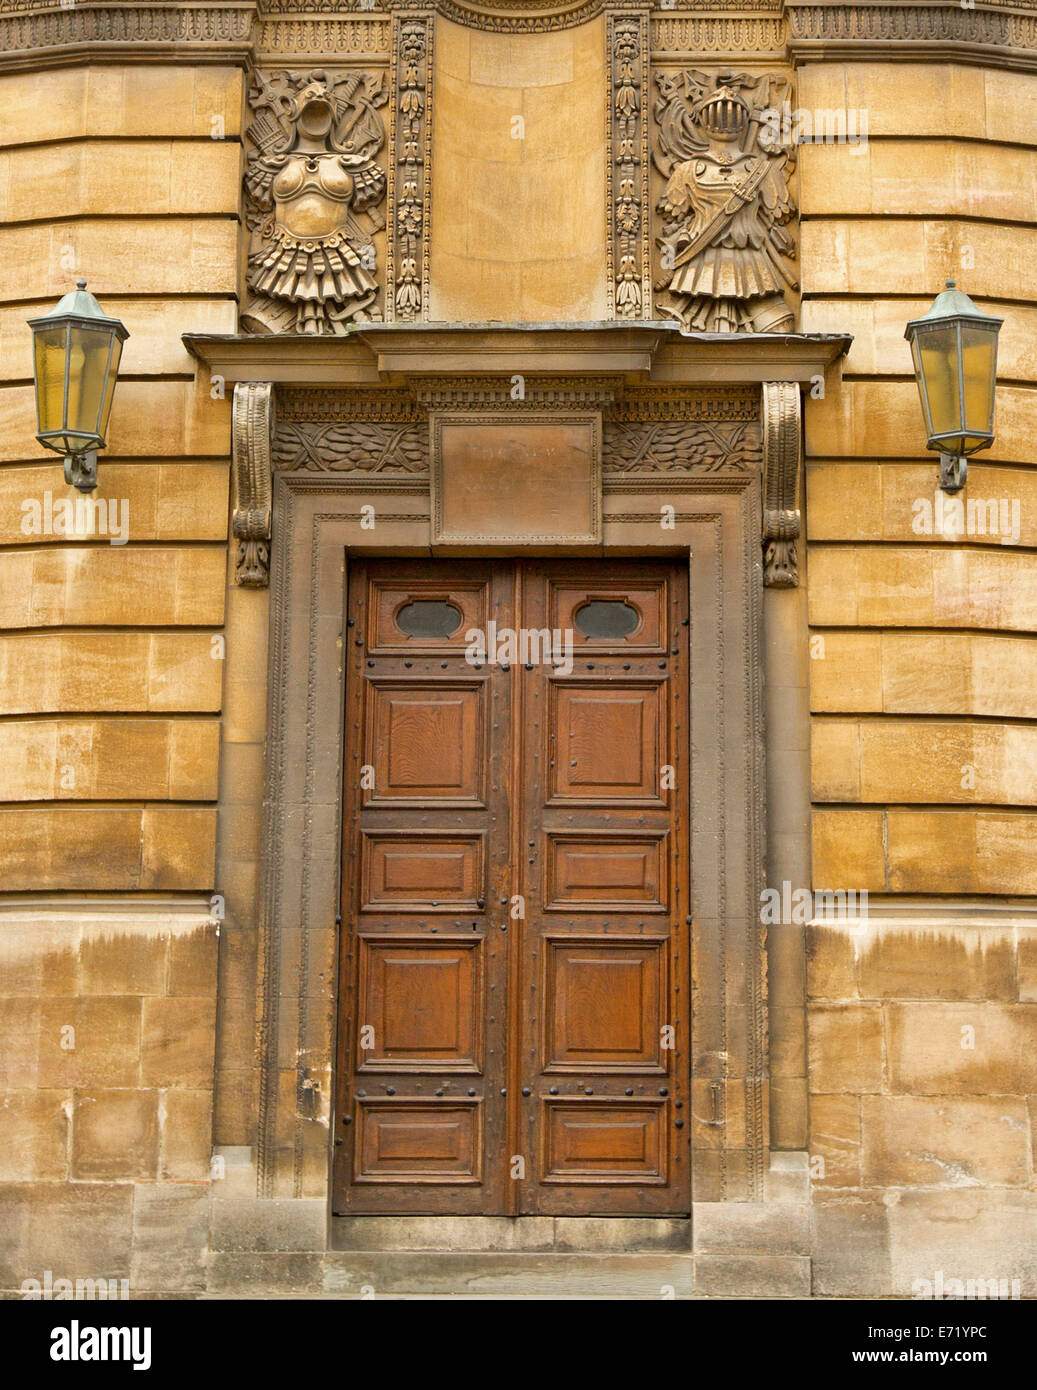 Ornate double front door with carved stonework facade Stock Photo ...